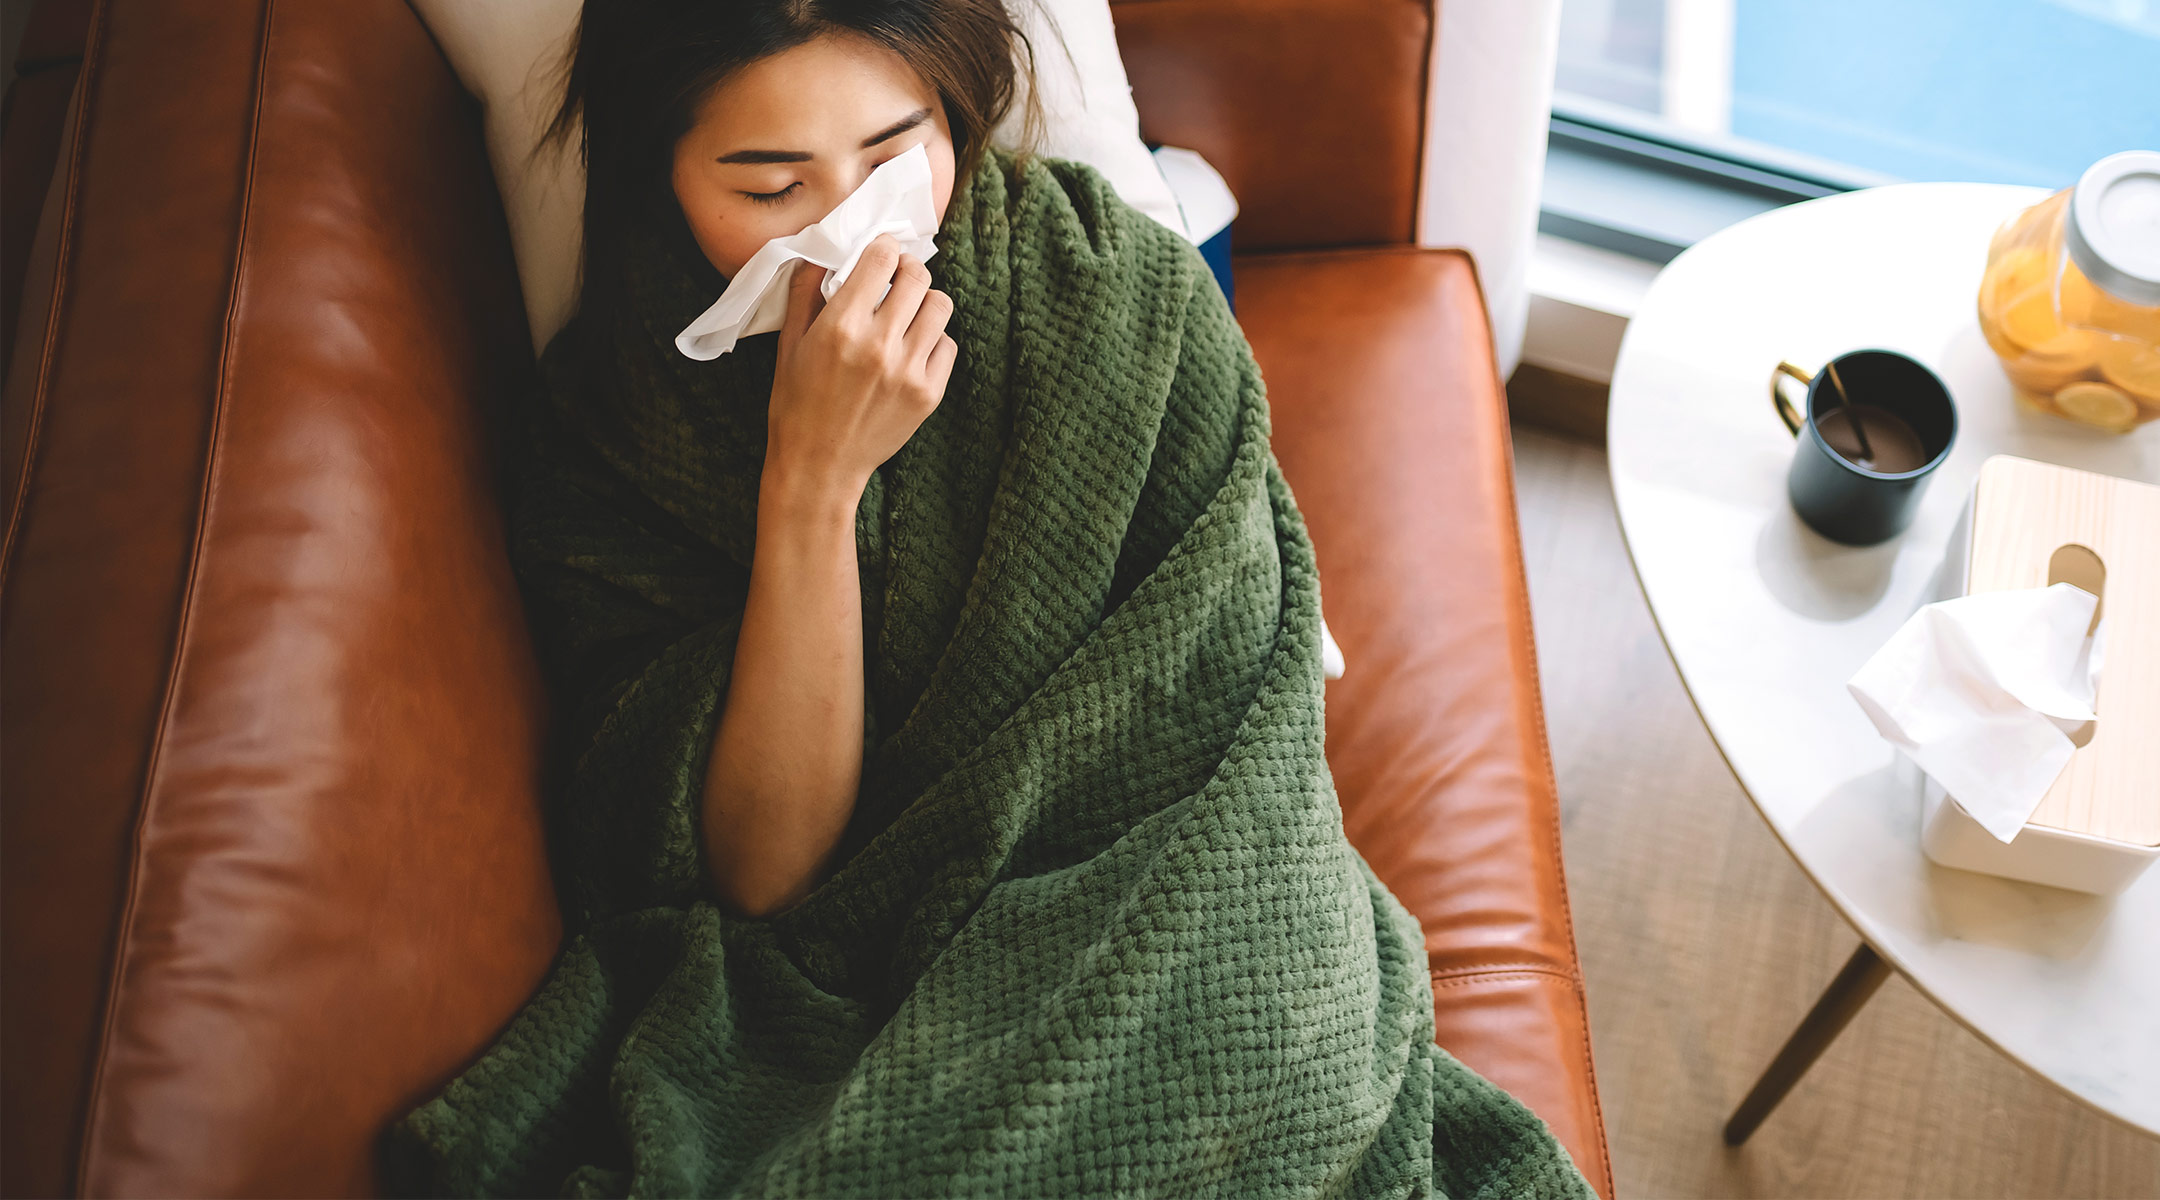 How to Treat the Flu While Pregnant